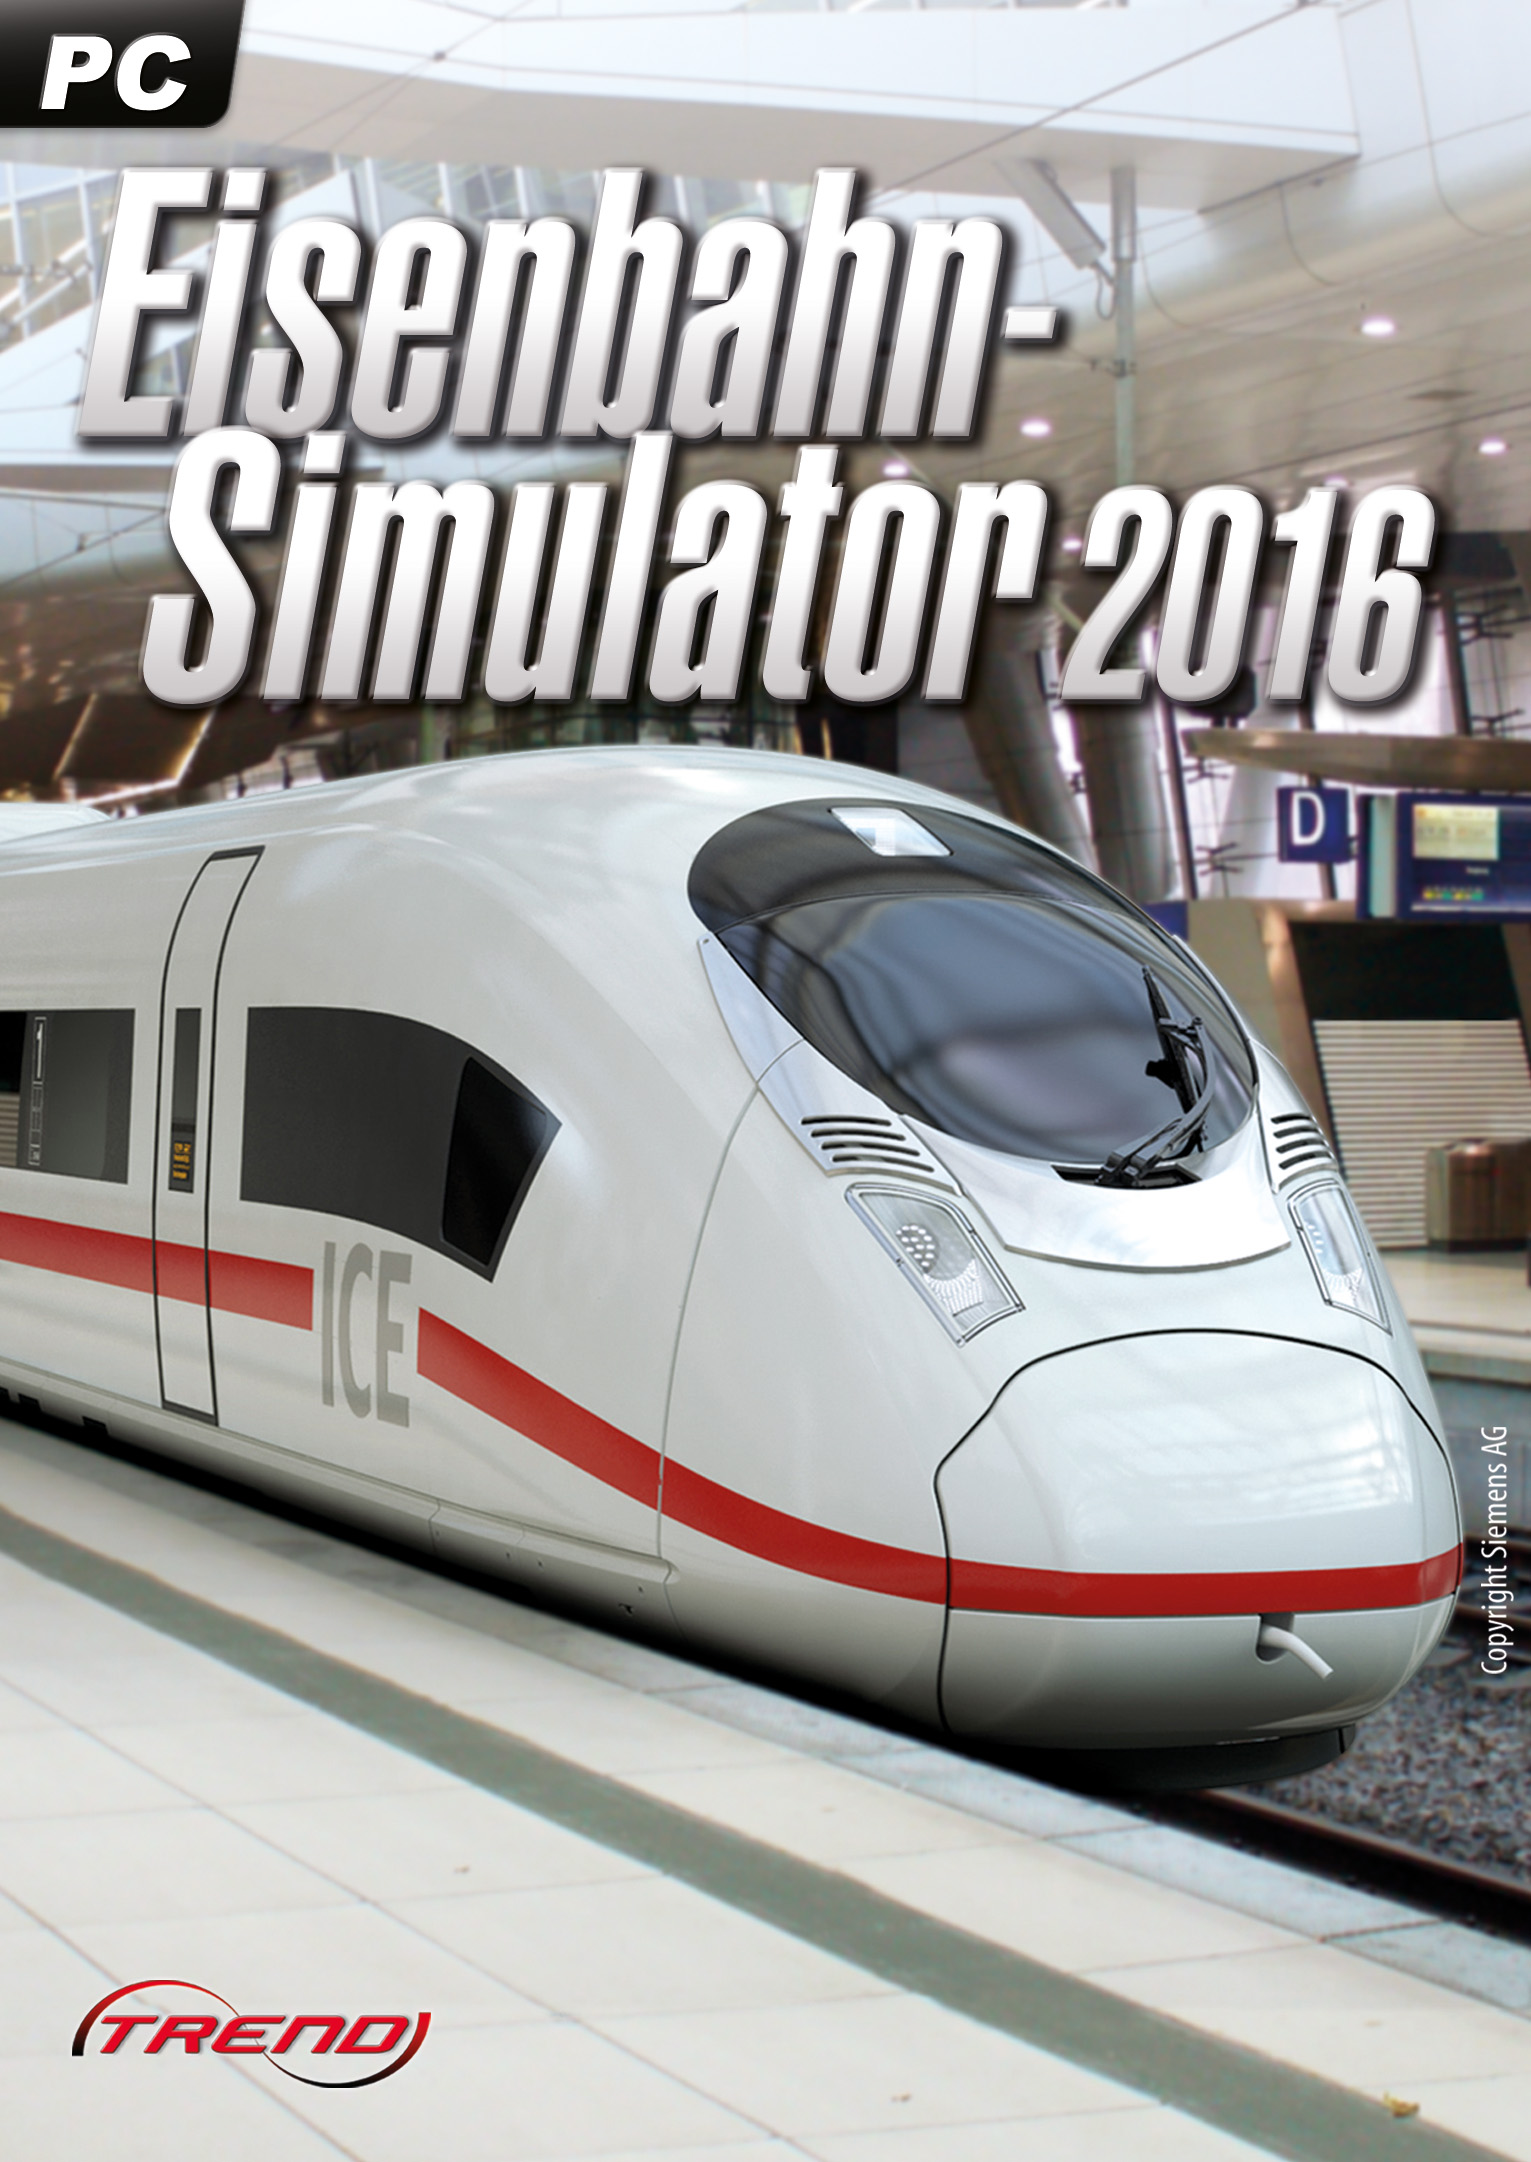 Eisenbahn-Simulator 2016 [PC Download]